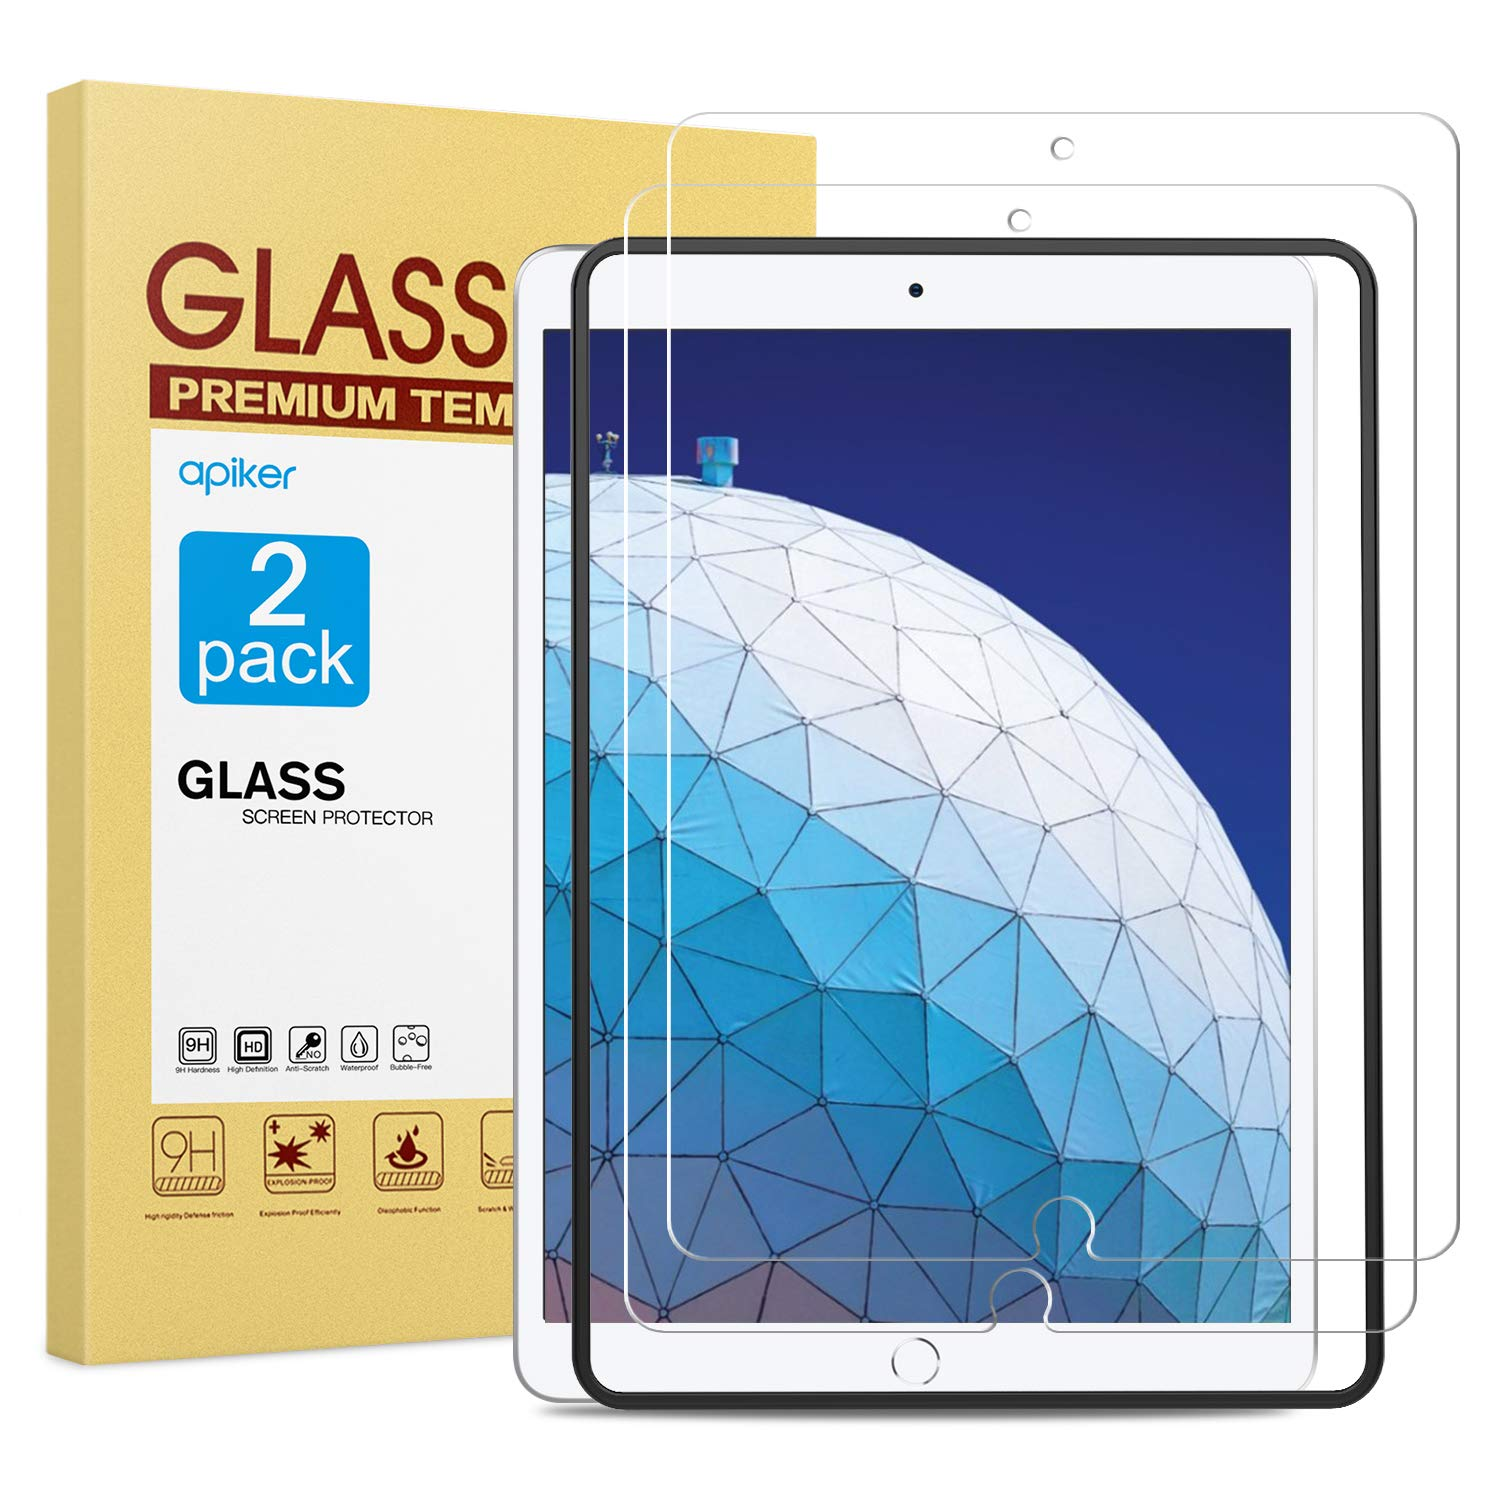 [2 Pack] Screen Protector for iPad Air 3 2019 / iPad Pro 10.5 Inch, apiker Tempered Glass Screen Protector with [Alignment Frame] [Apple Pencil Compatible]